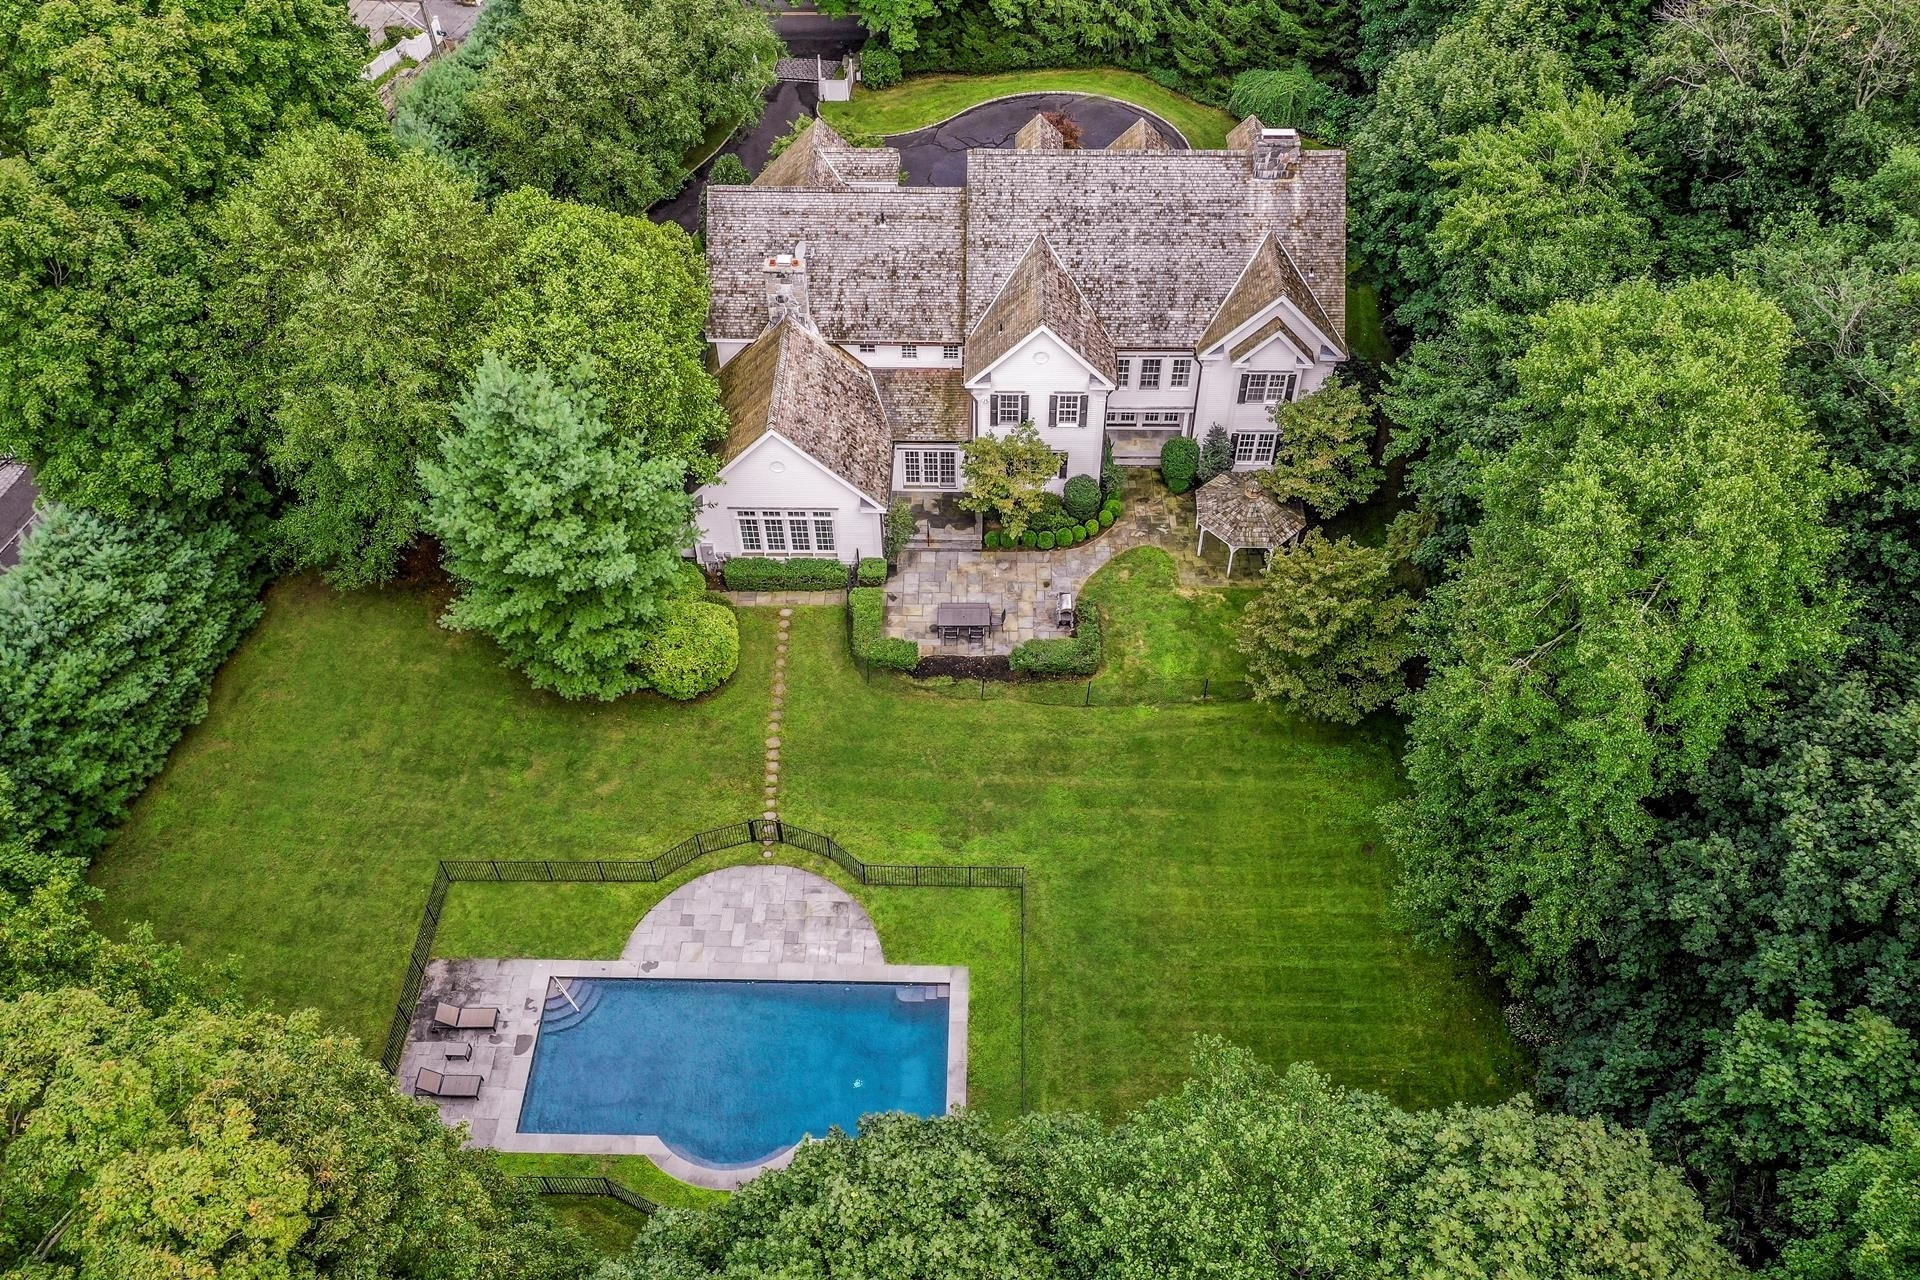 Single Family Home for Sale at Central Greenwich, Greenwich, CT 06830